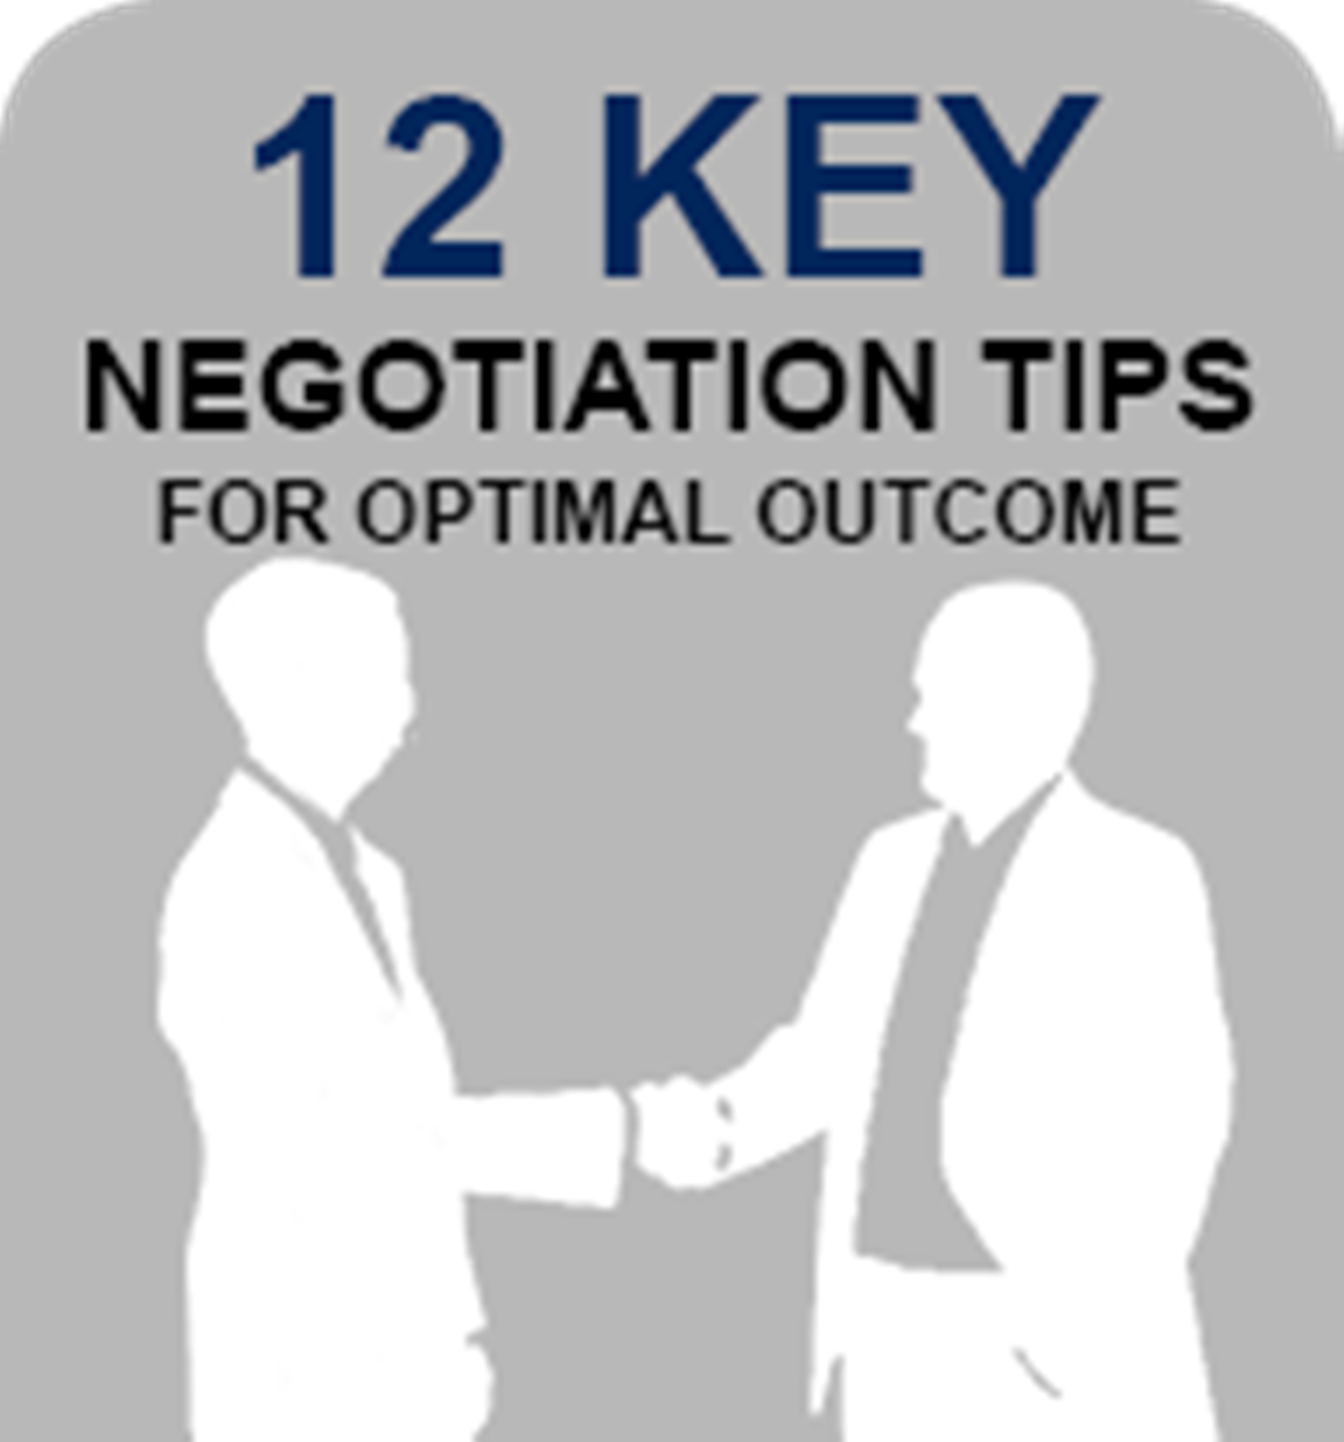 Tech M&A Monthly: M&A Negotiation Tips #5 & 6